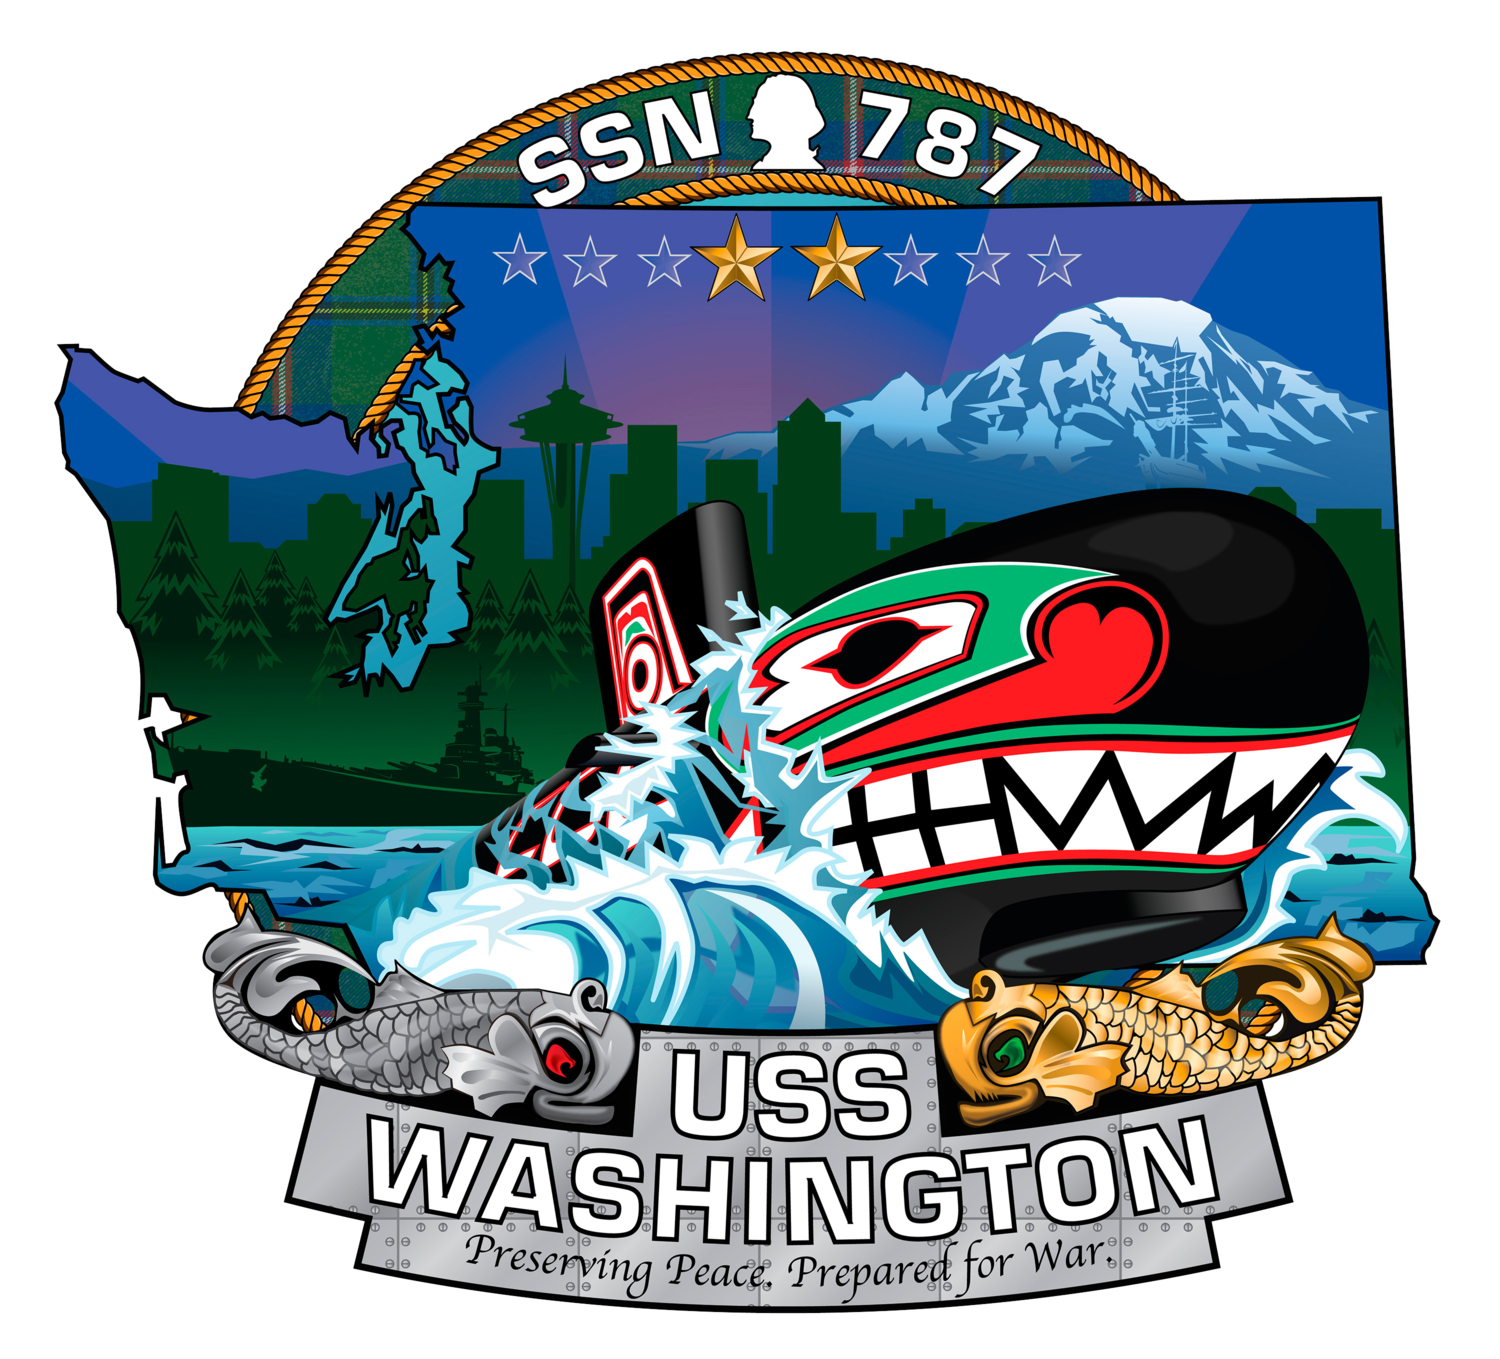 The ship's crest of the Virginia-class attack submarine USS Washington (SSN 787).